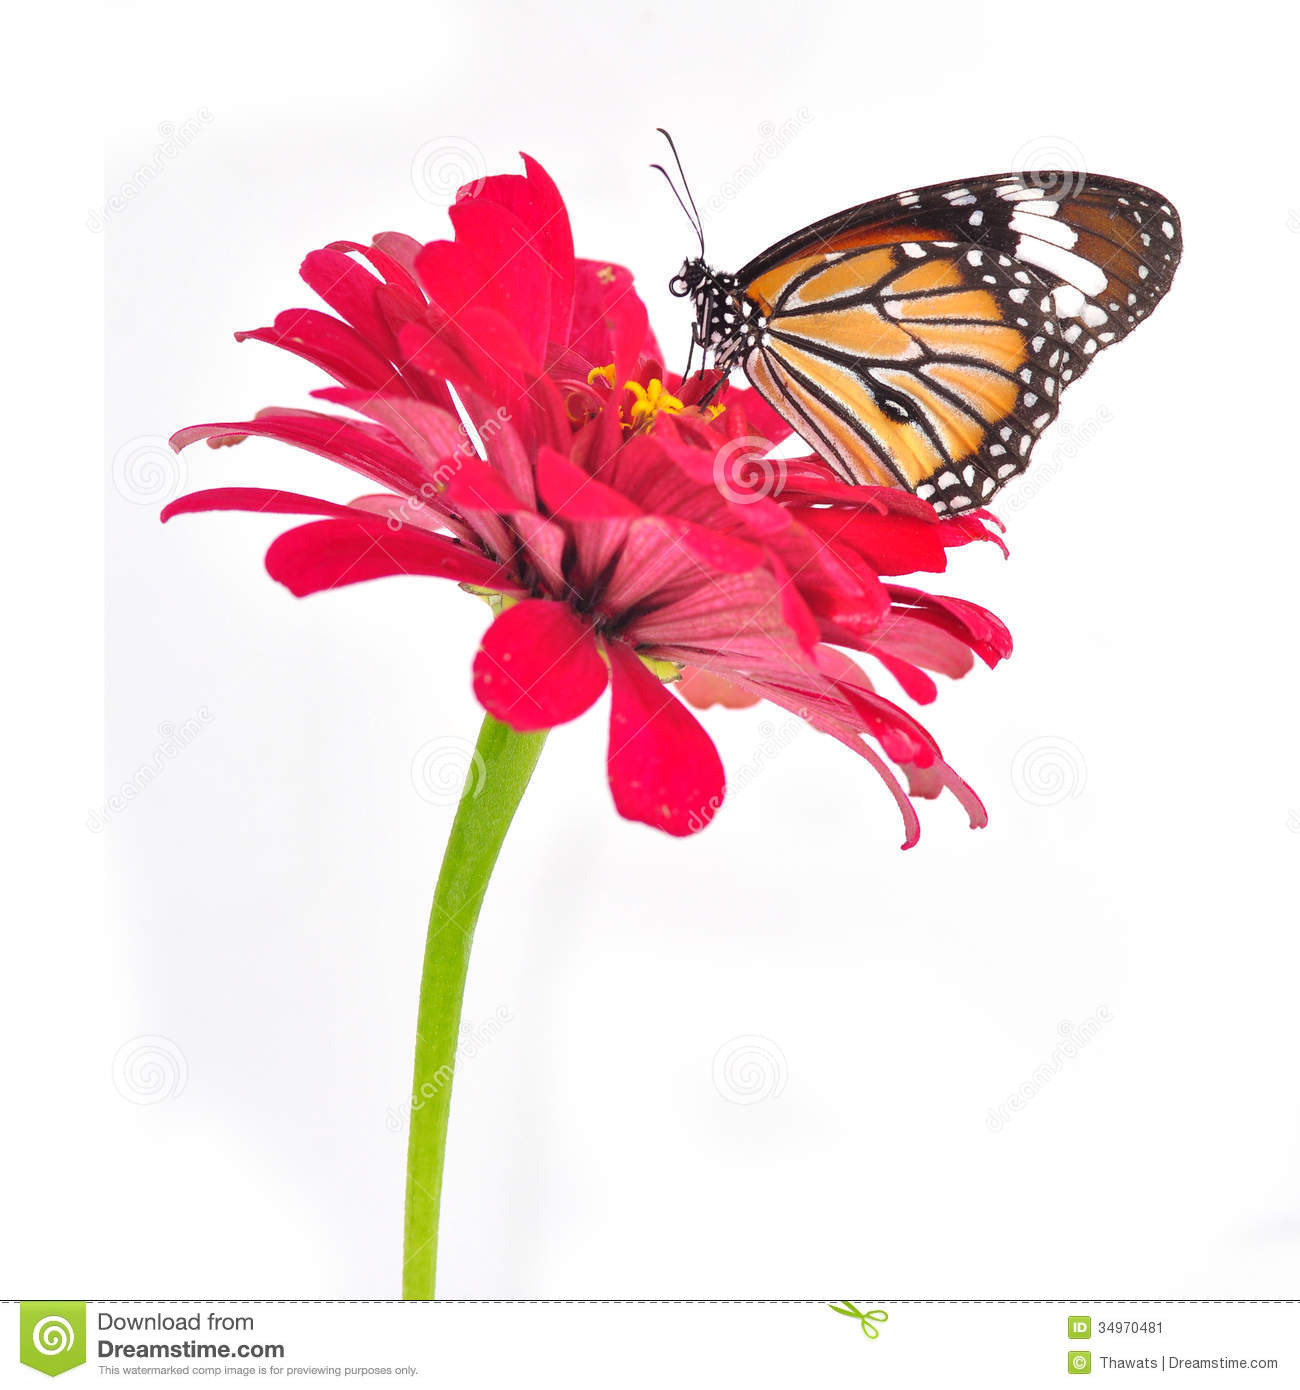 Monarch Butterfly Stock Image. Image Of Butterfly, Natural